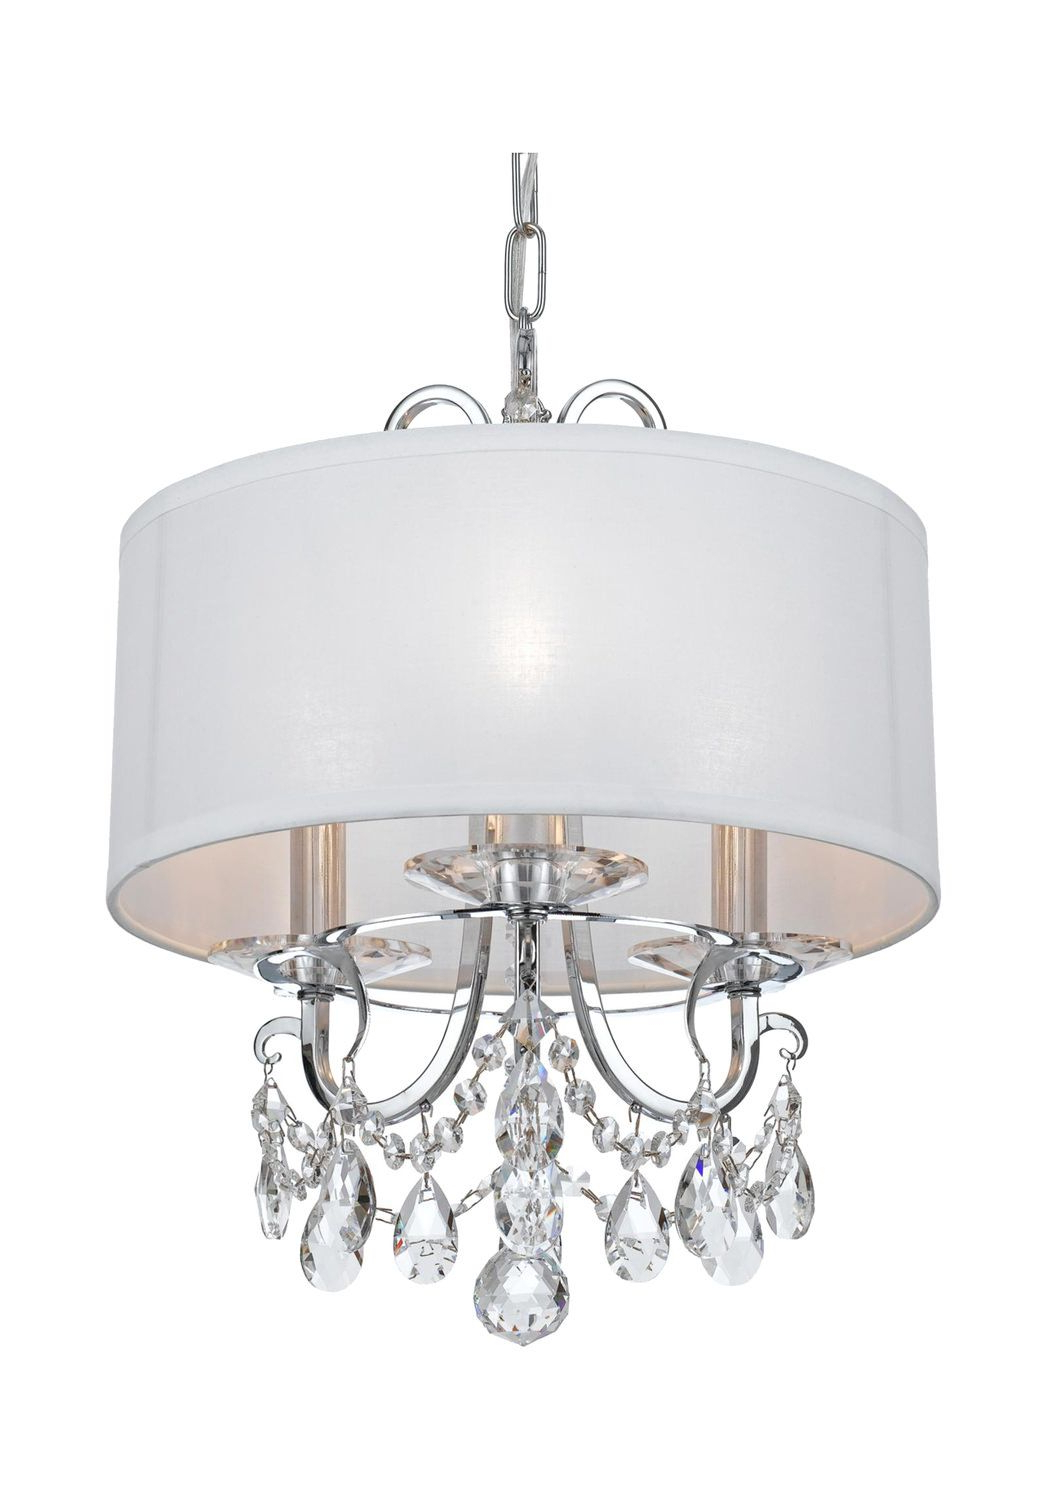 Summer Catalog Throughout Abel 5 Light Drum Chandeliers (View 16 of 20)